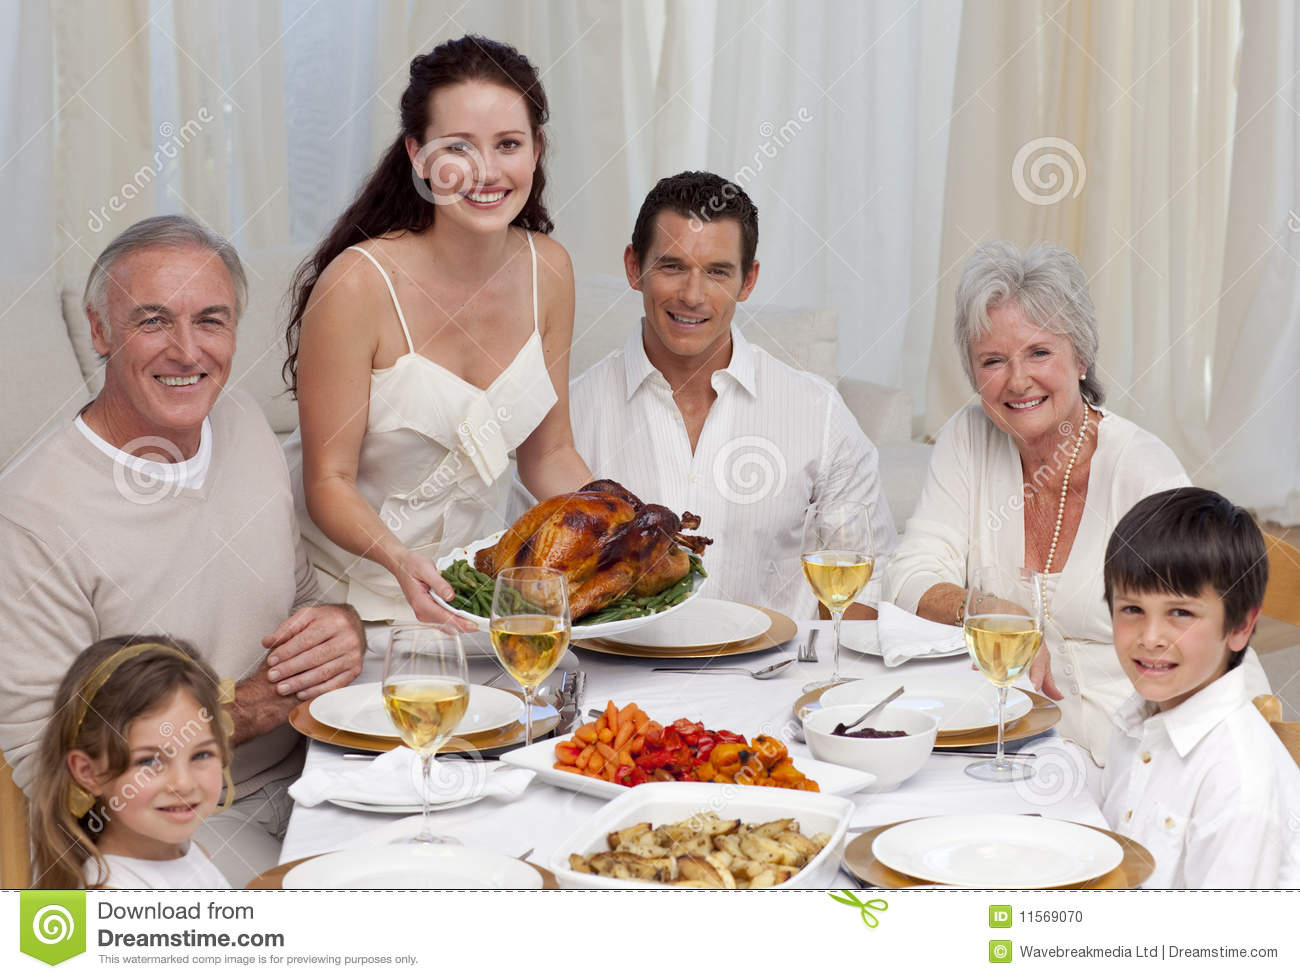 Family eating turkey in a dinner